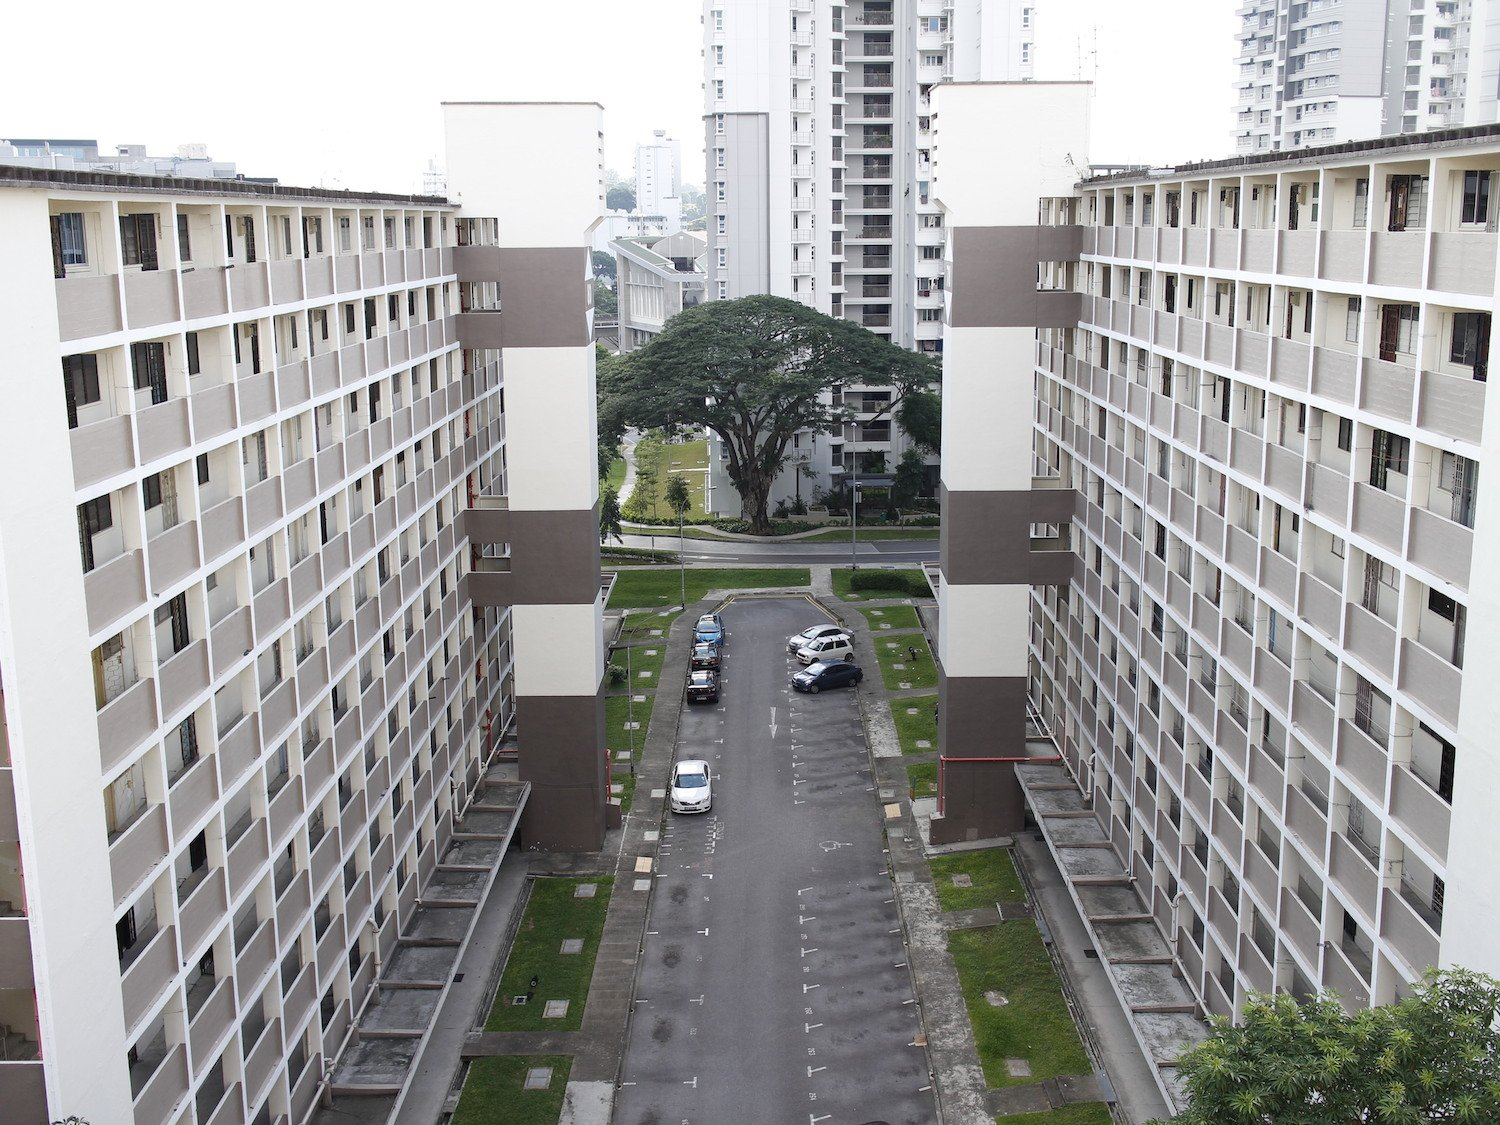 The abandoned Tanglin Halt SERS flats still have a certain charm to them